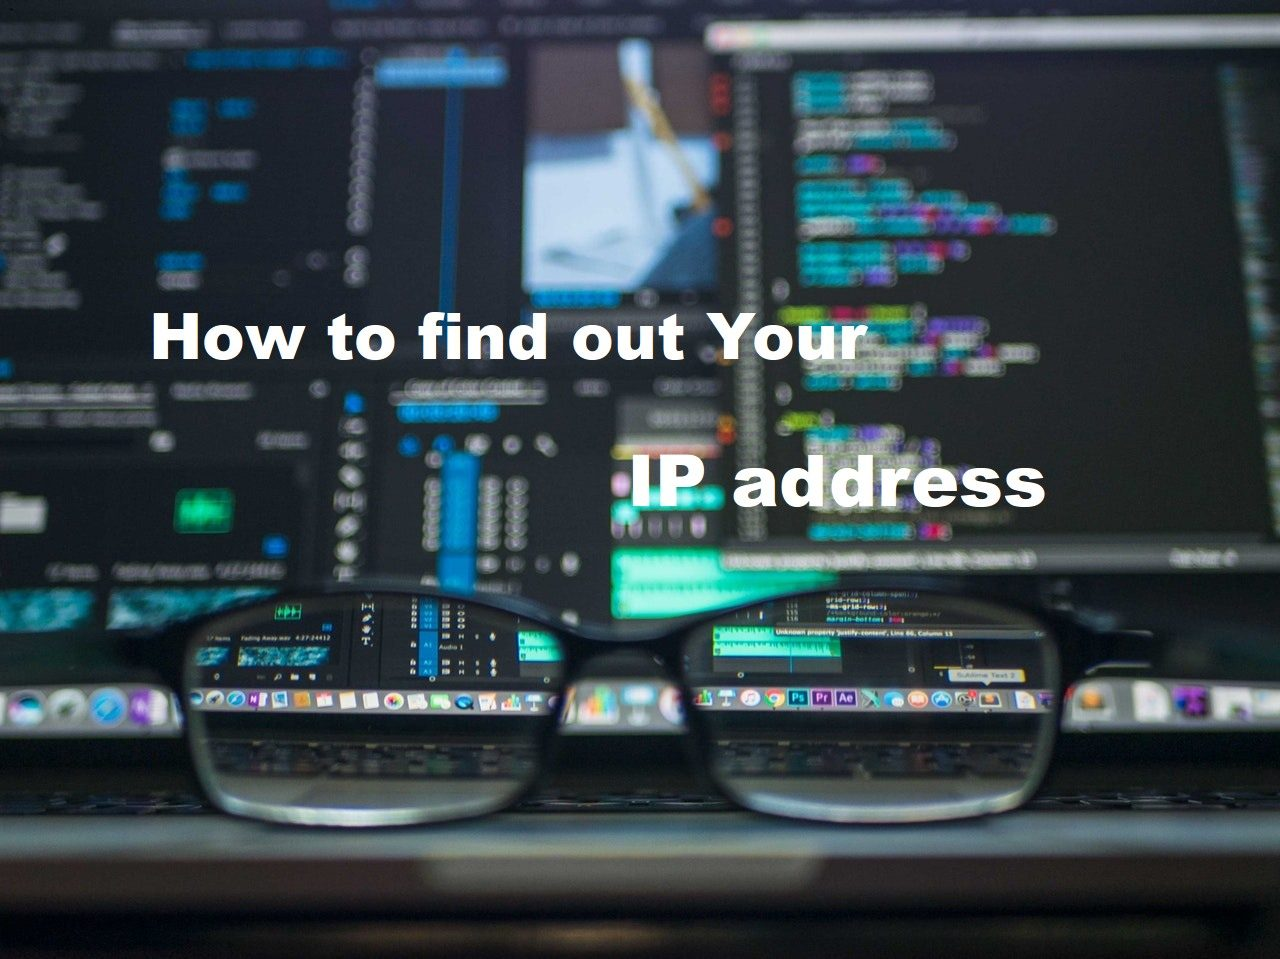 IP address how to find it